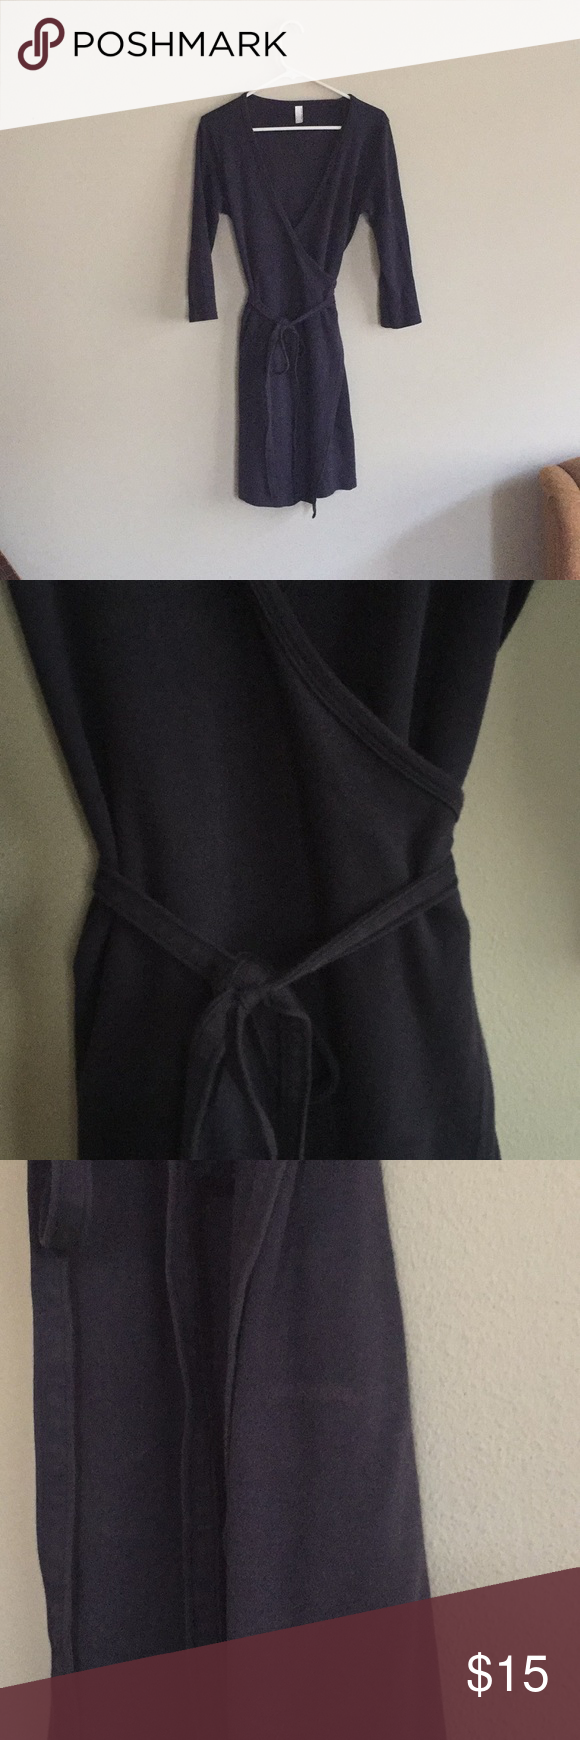 "979b069f55c American Apparel blue wrap dress Dark blue ""Classic Girl"" American Apparel  wrap dress."